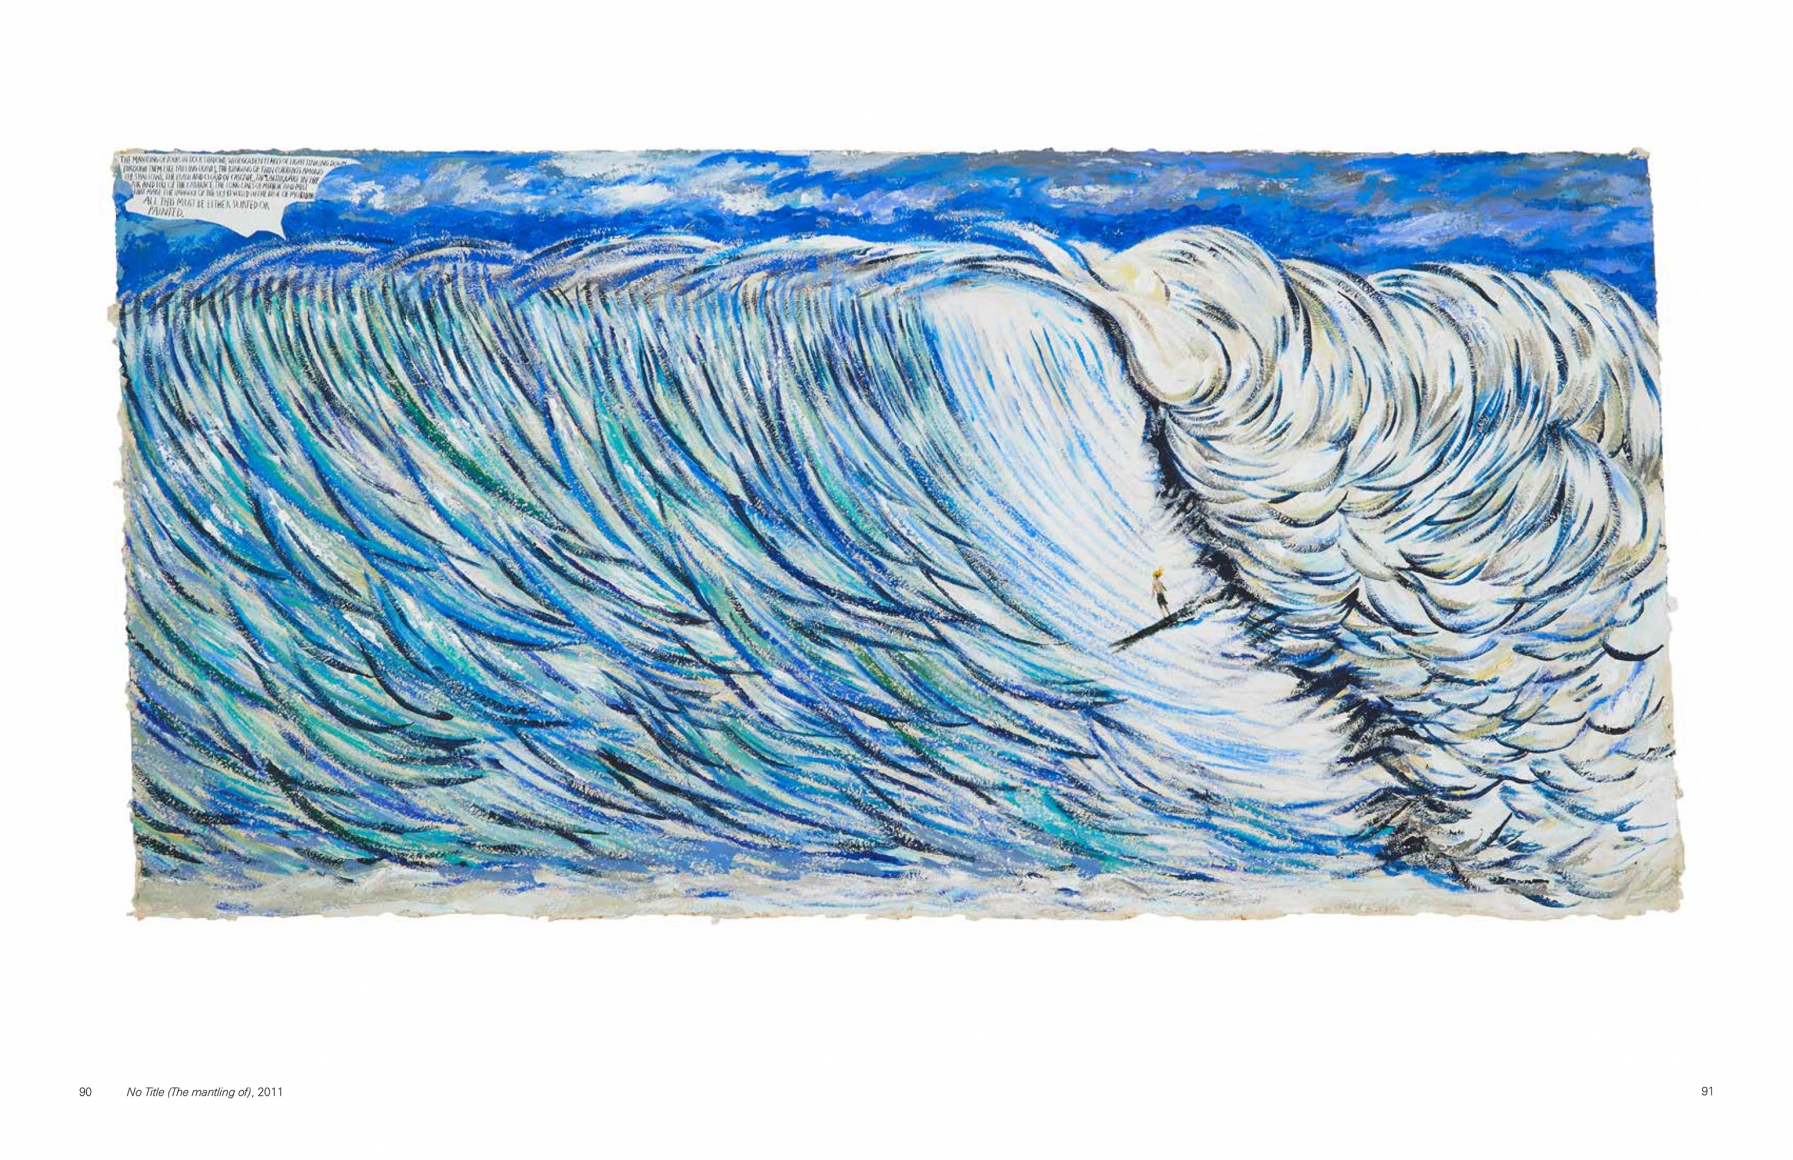 Interior view of Raymond Pettibon: Are Your Motives Pure?, published by Venus Over Manhattan, New York, 2014